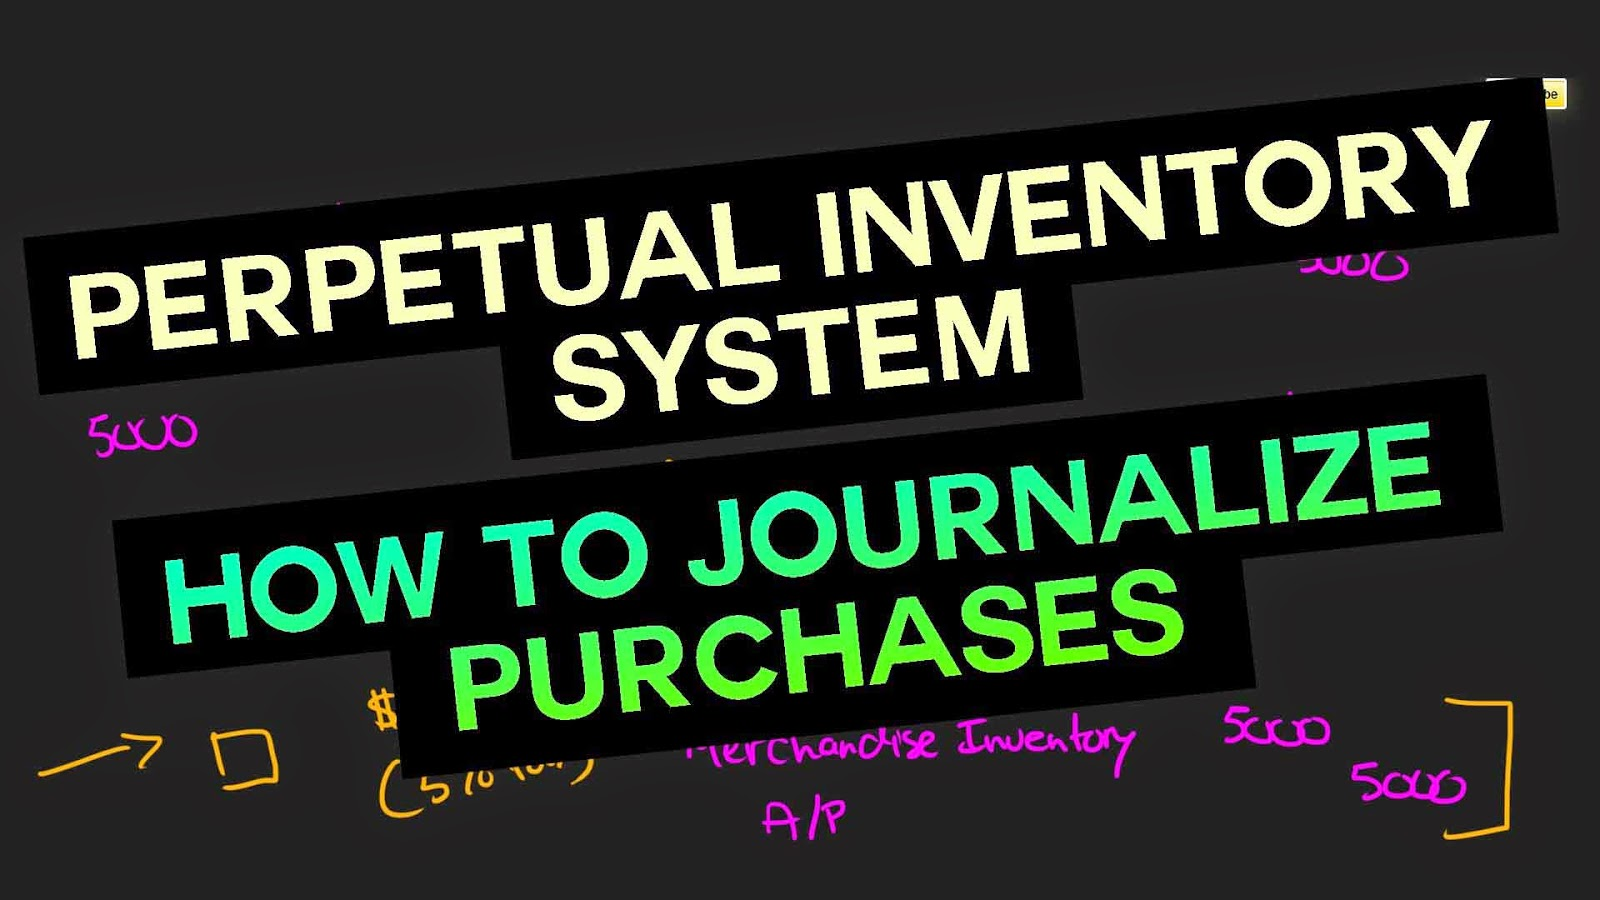 Advantages & Disadvantages of Using a Perpetual Inventory System